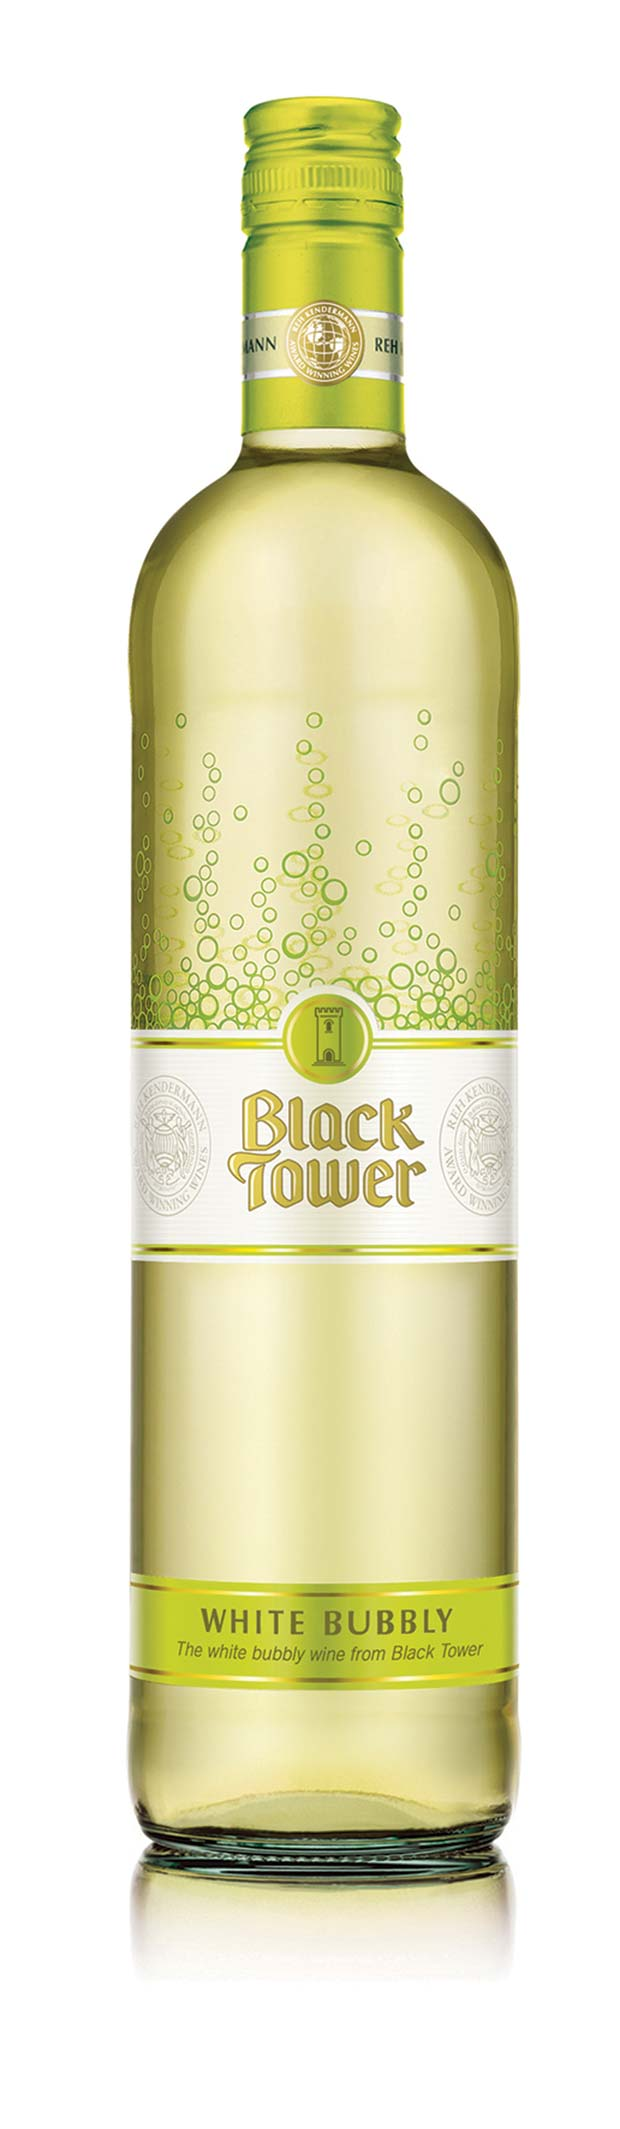 BLACK-TOWER-White-Bubbly